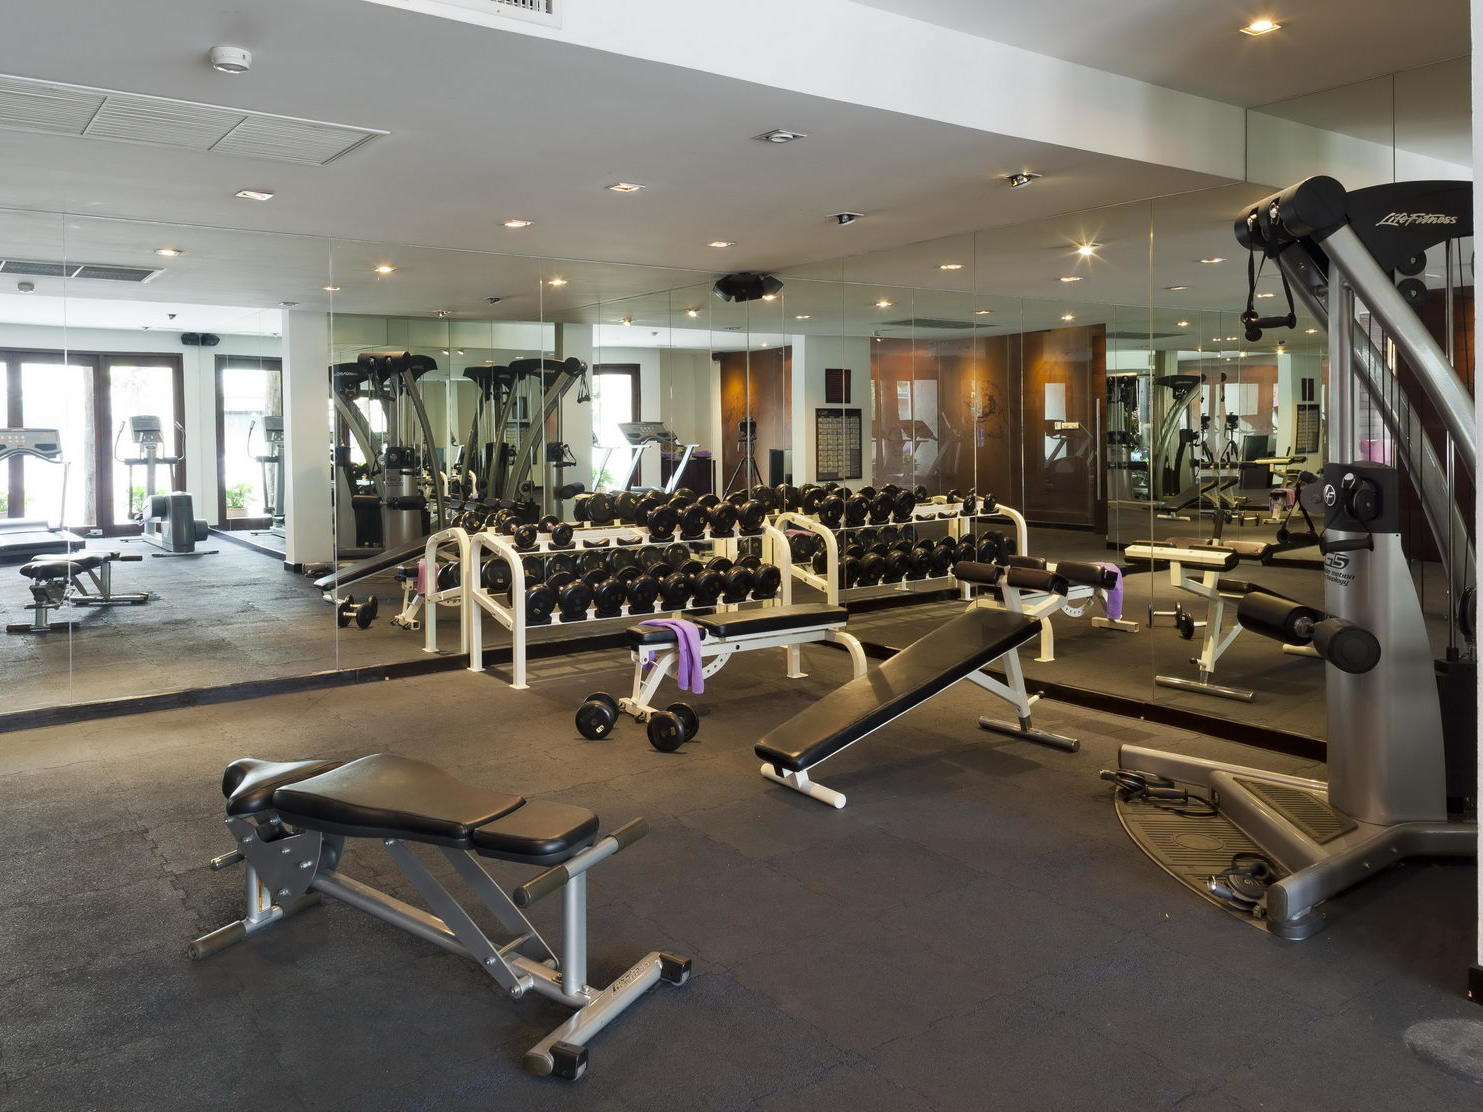 Spacious Gym at U Hotels and Resorts